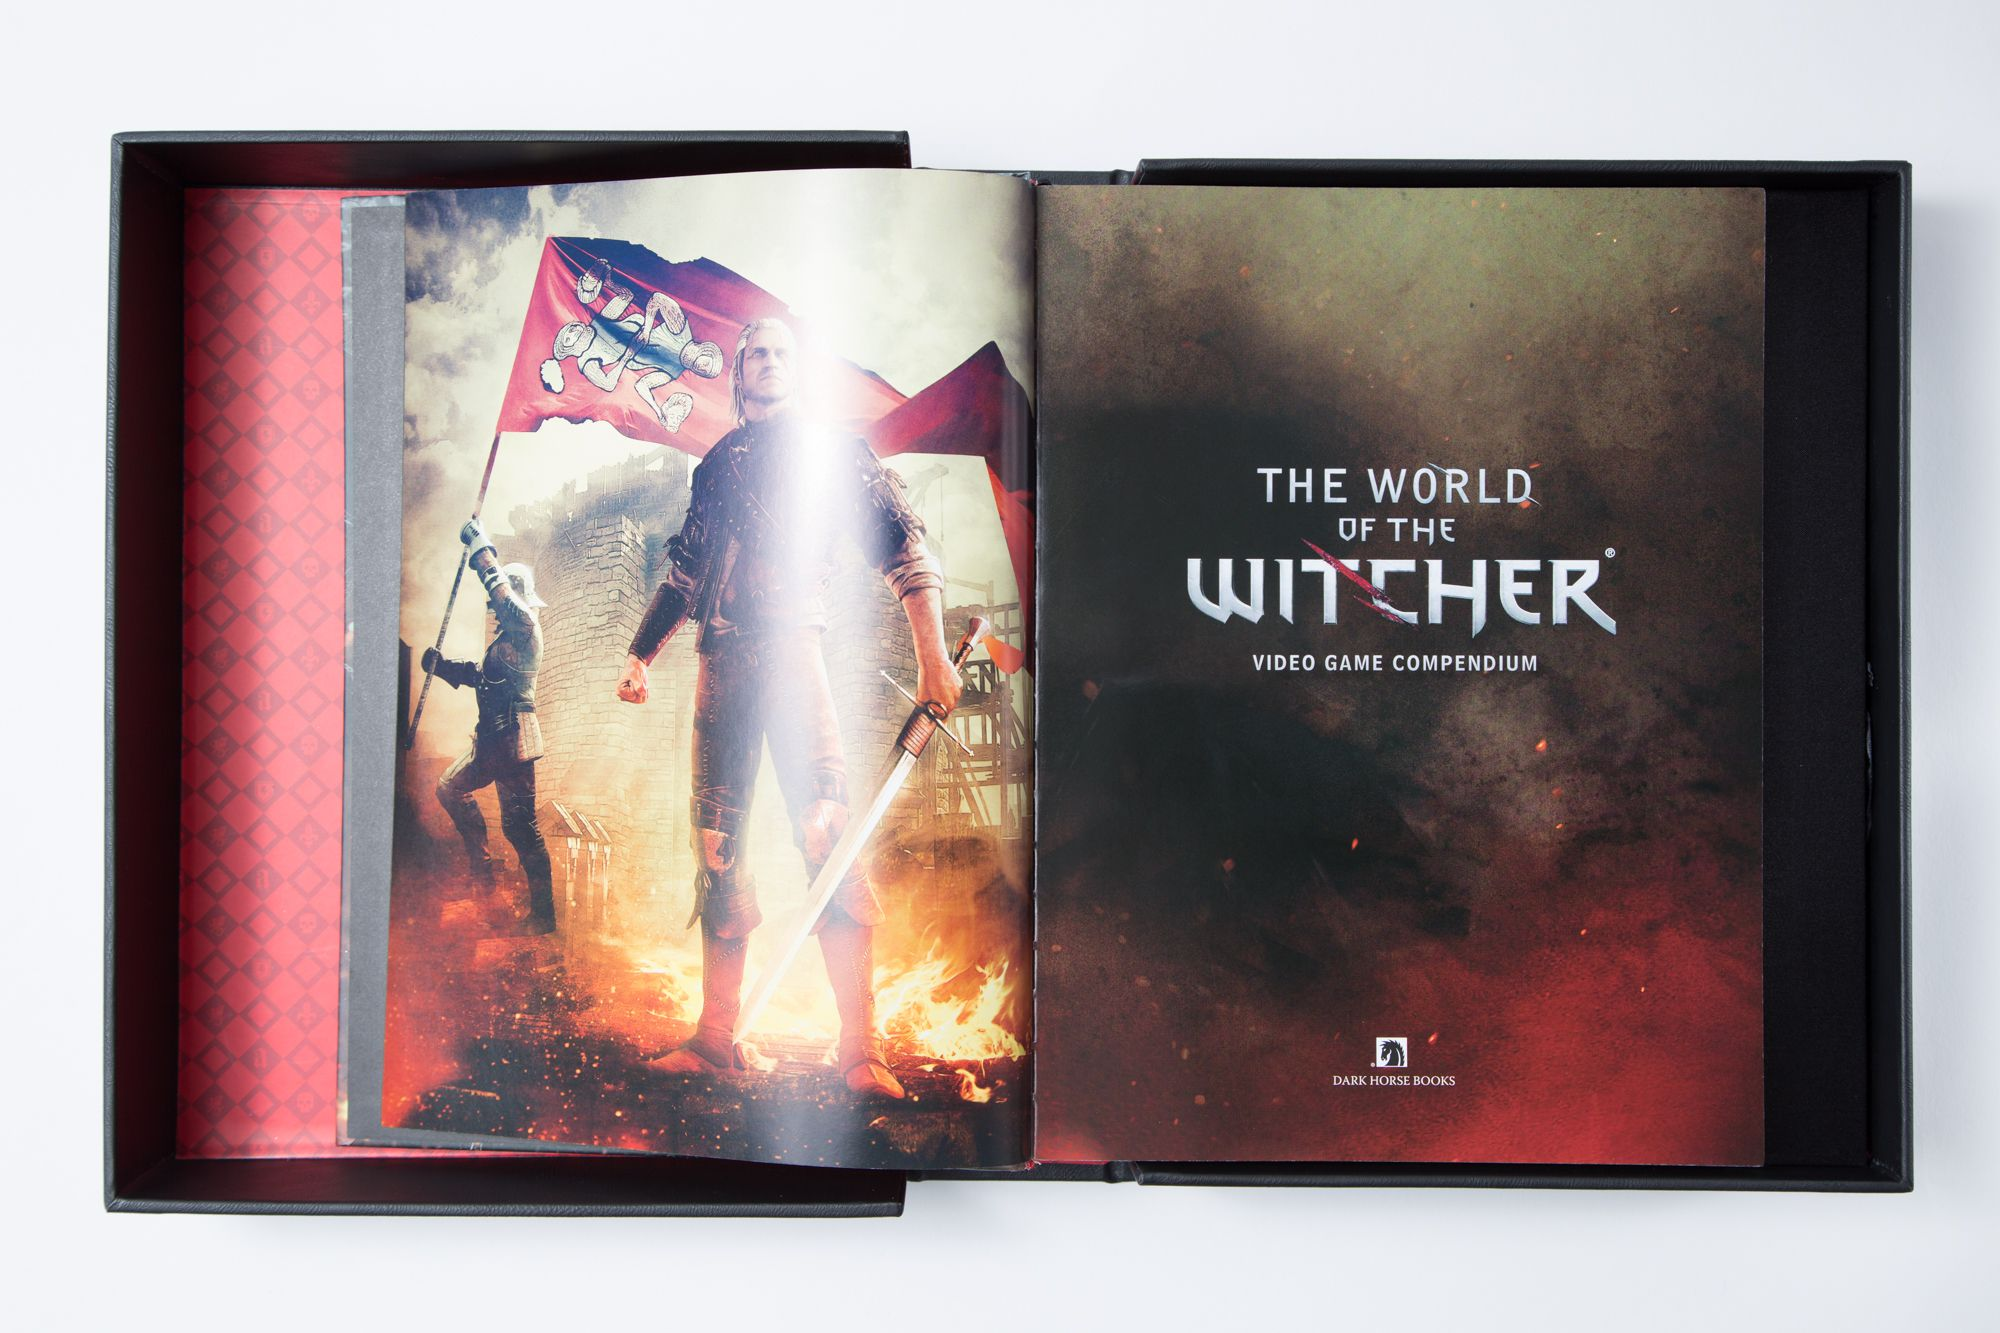 This is what a $100 Witcher lore pendium looks like